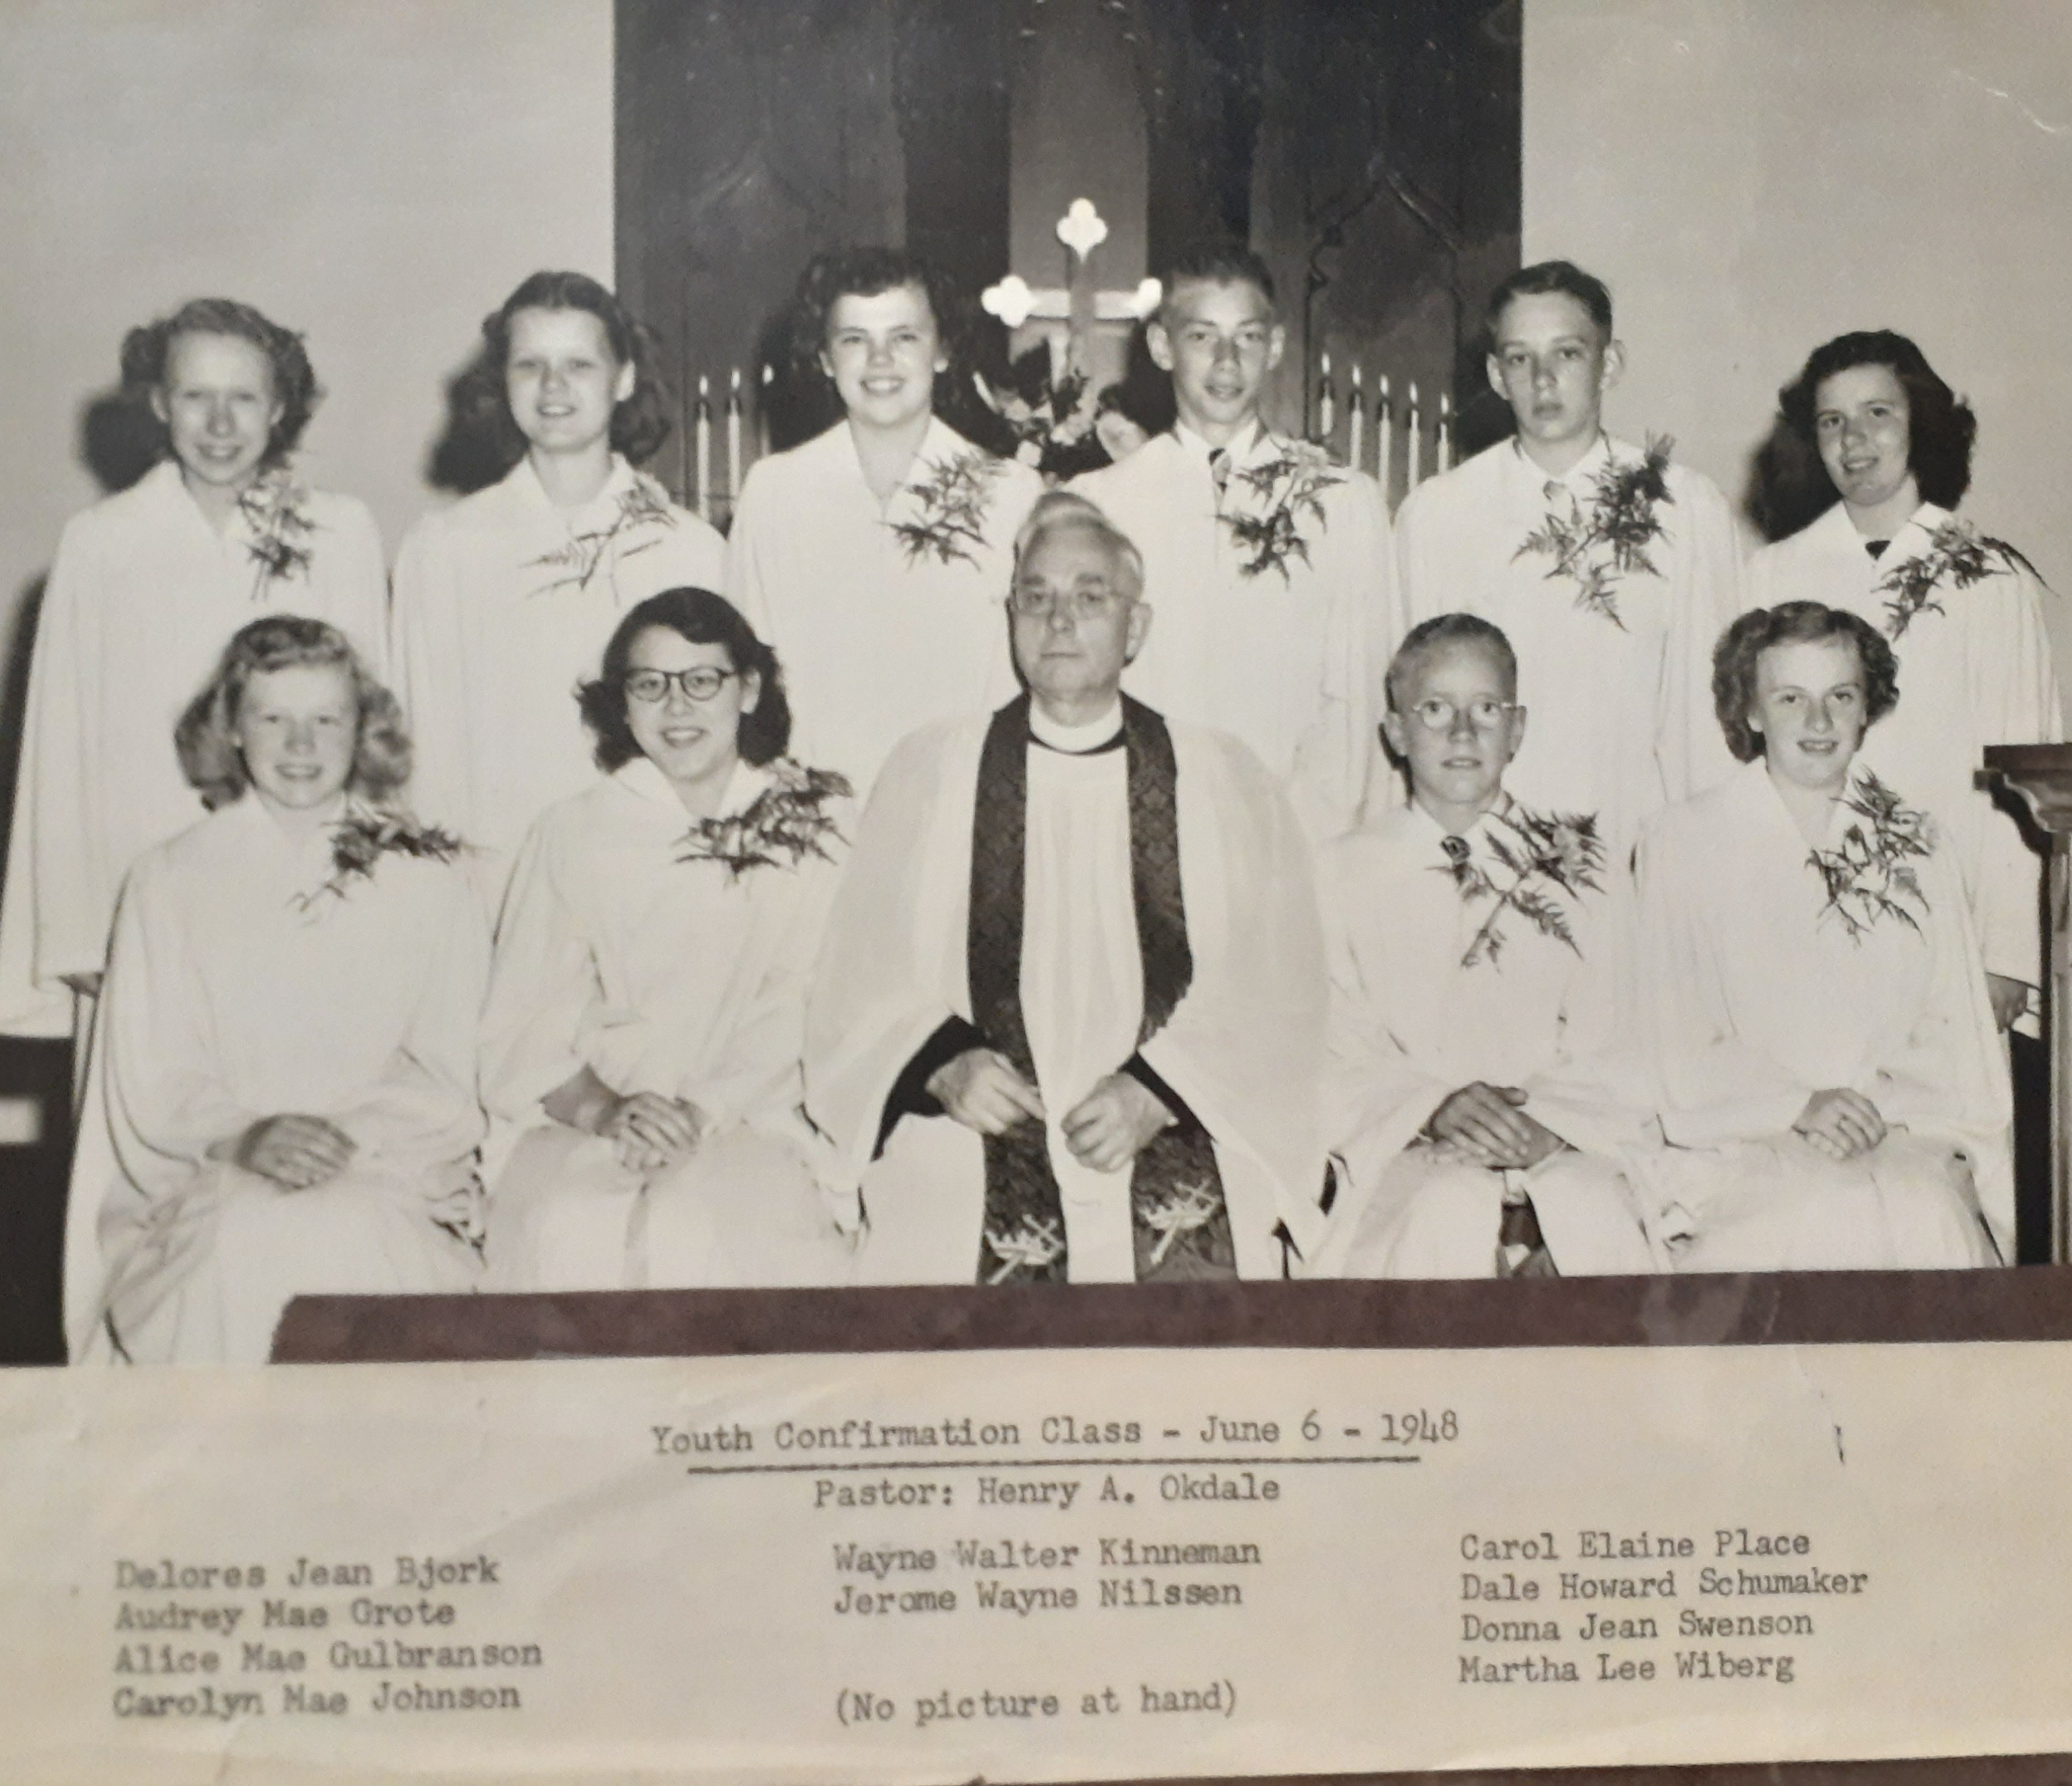 Confirmation pic 1948